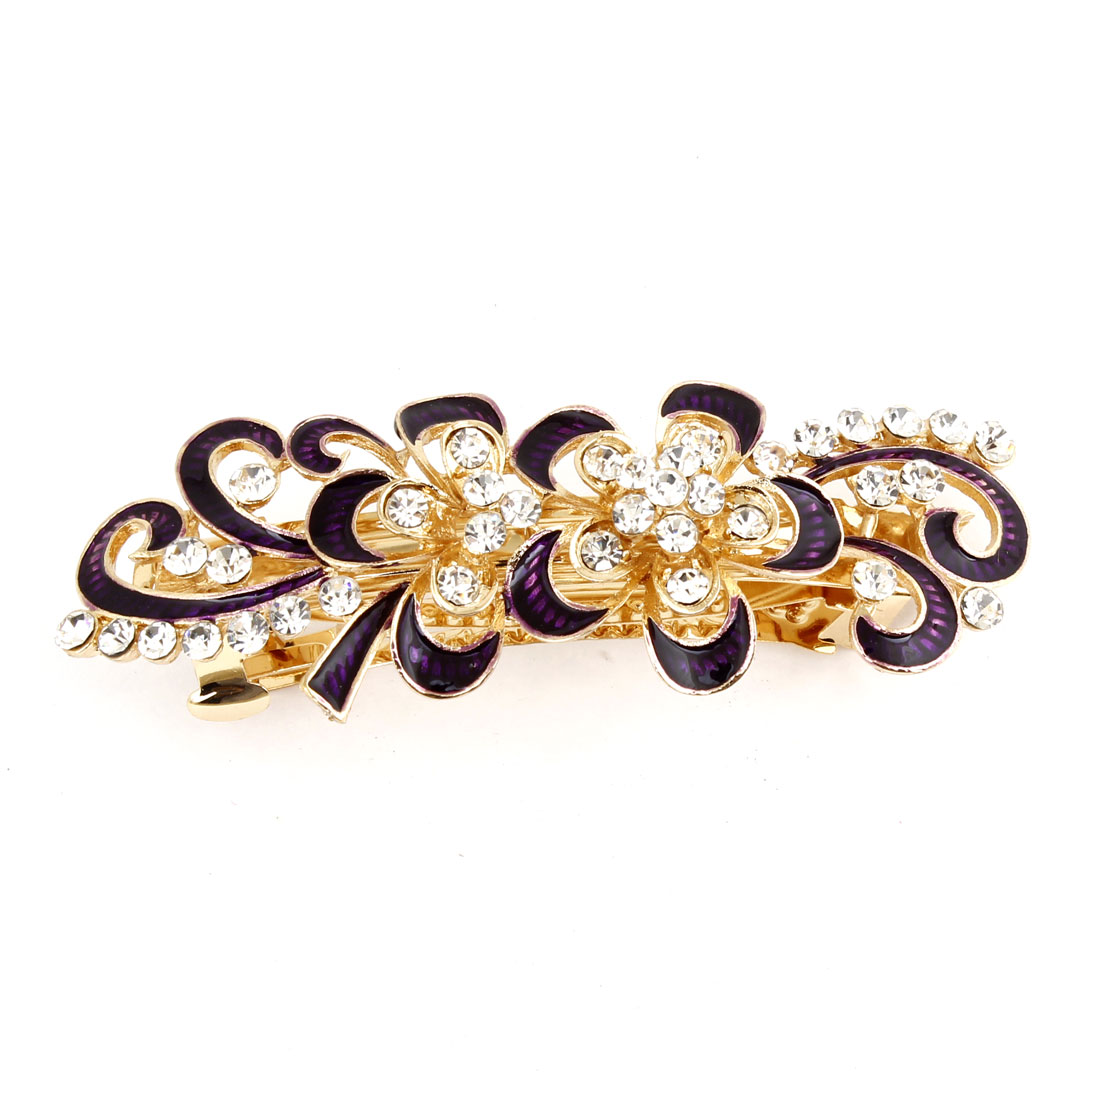 Dark Purple Rhinestones Inlaid Swirl Floral Barrette French Hair Clip